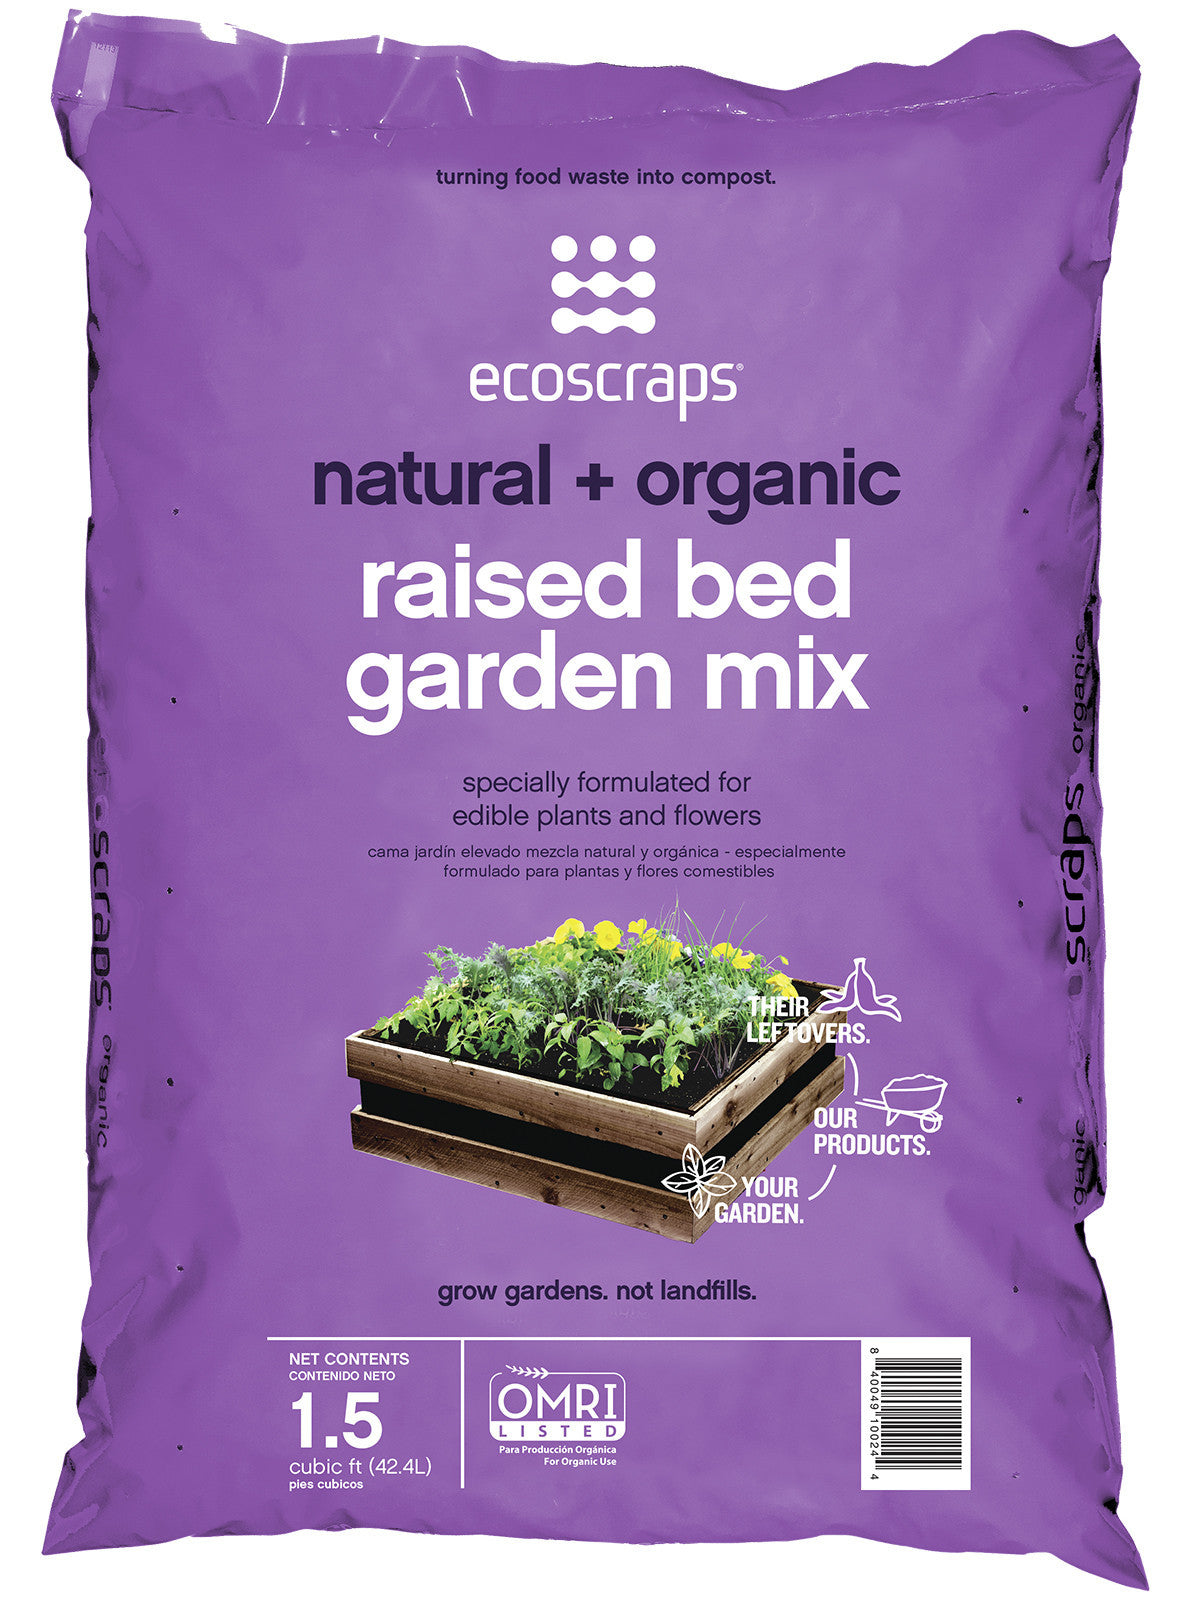 compost garden combination we can purchased soil of at a us be for suggest or using organic soils one gardens about grove landscape rain cedar mulch these potting building